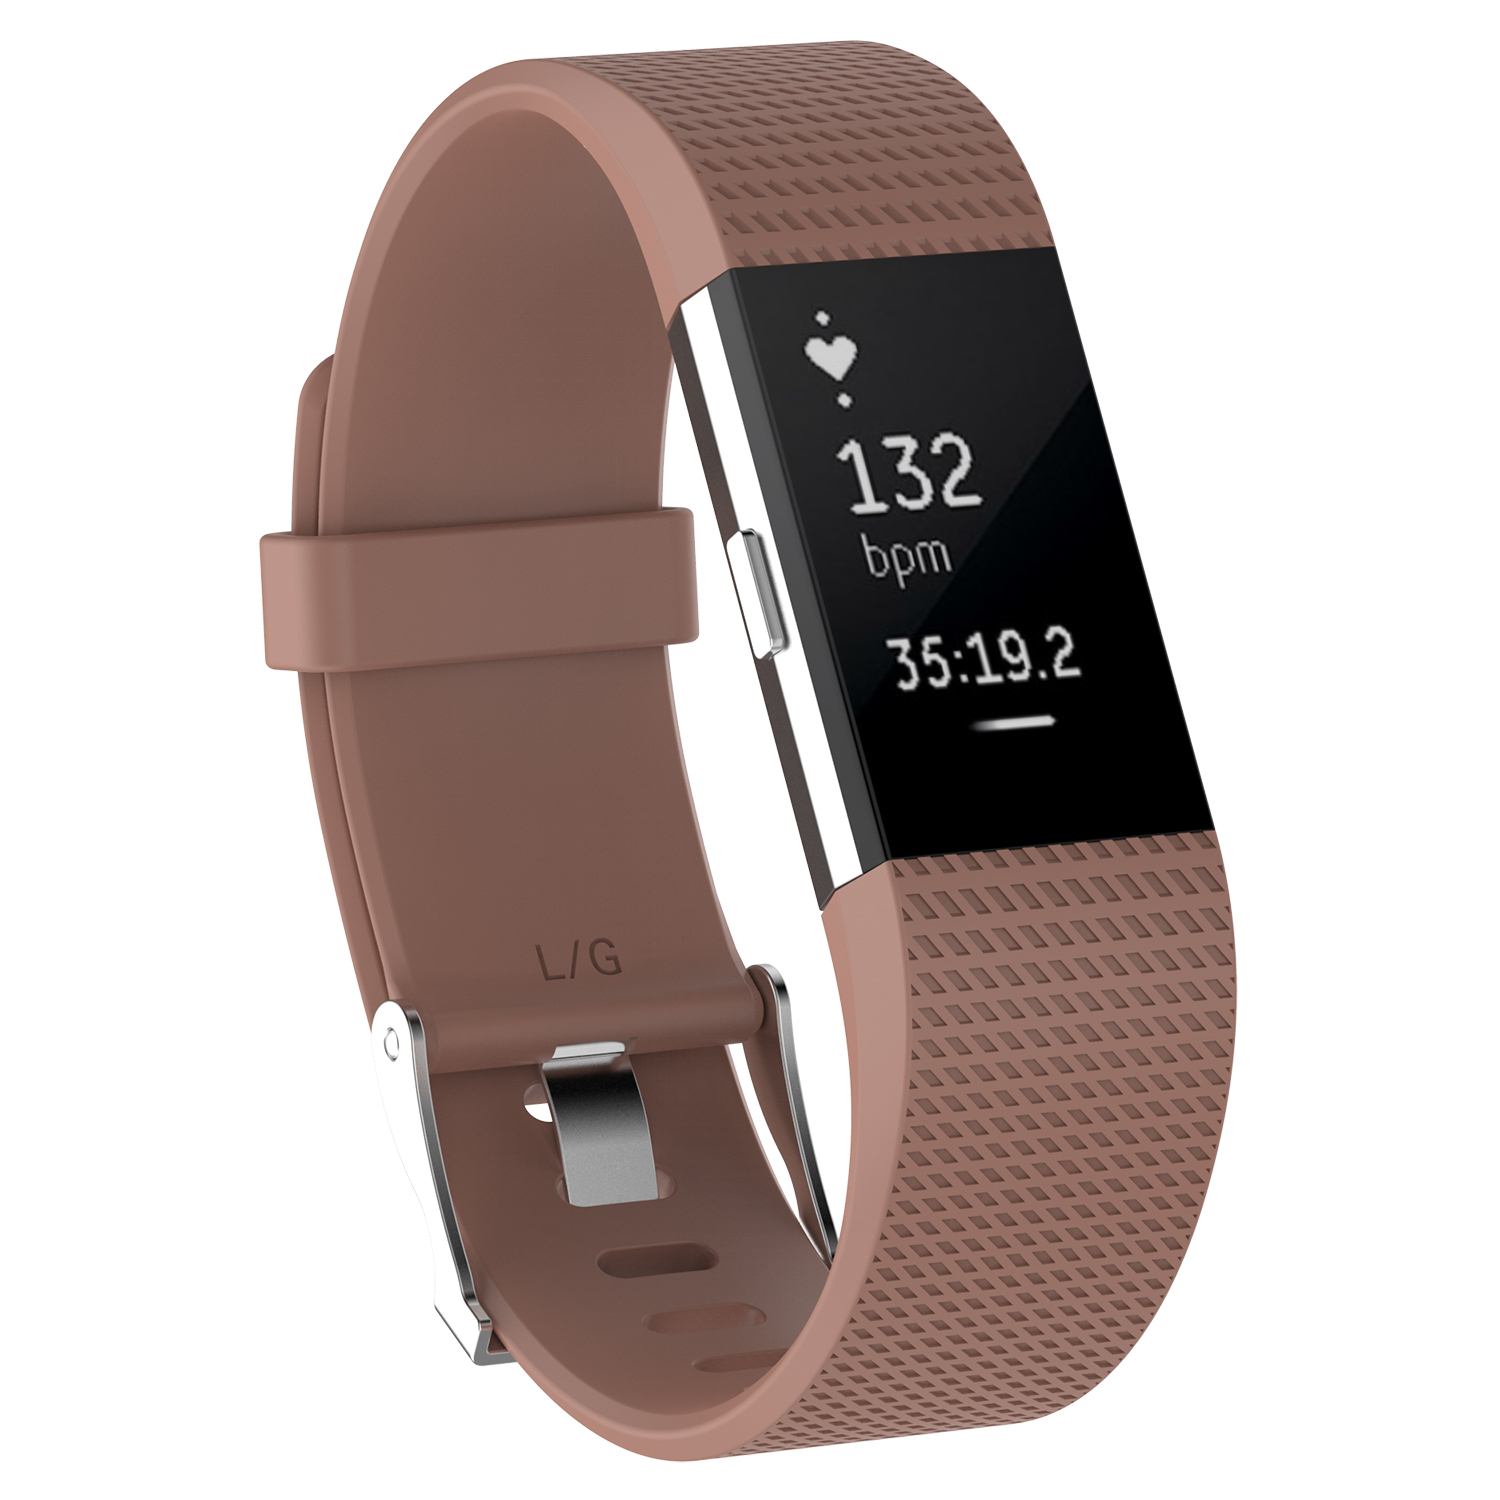 Replacement-Silicone-Wristband-Watch-Strap-Bands-Bracelet-For-Fitbit-Charge-2 thumbnail 51